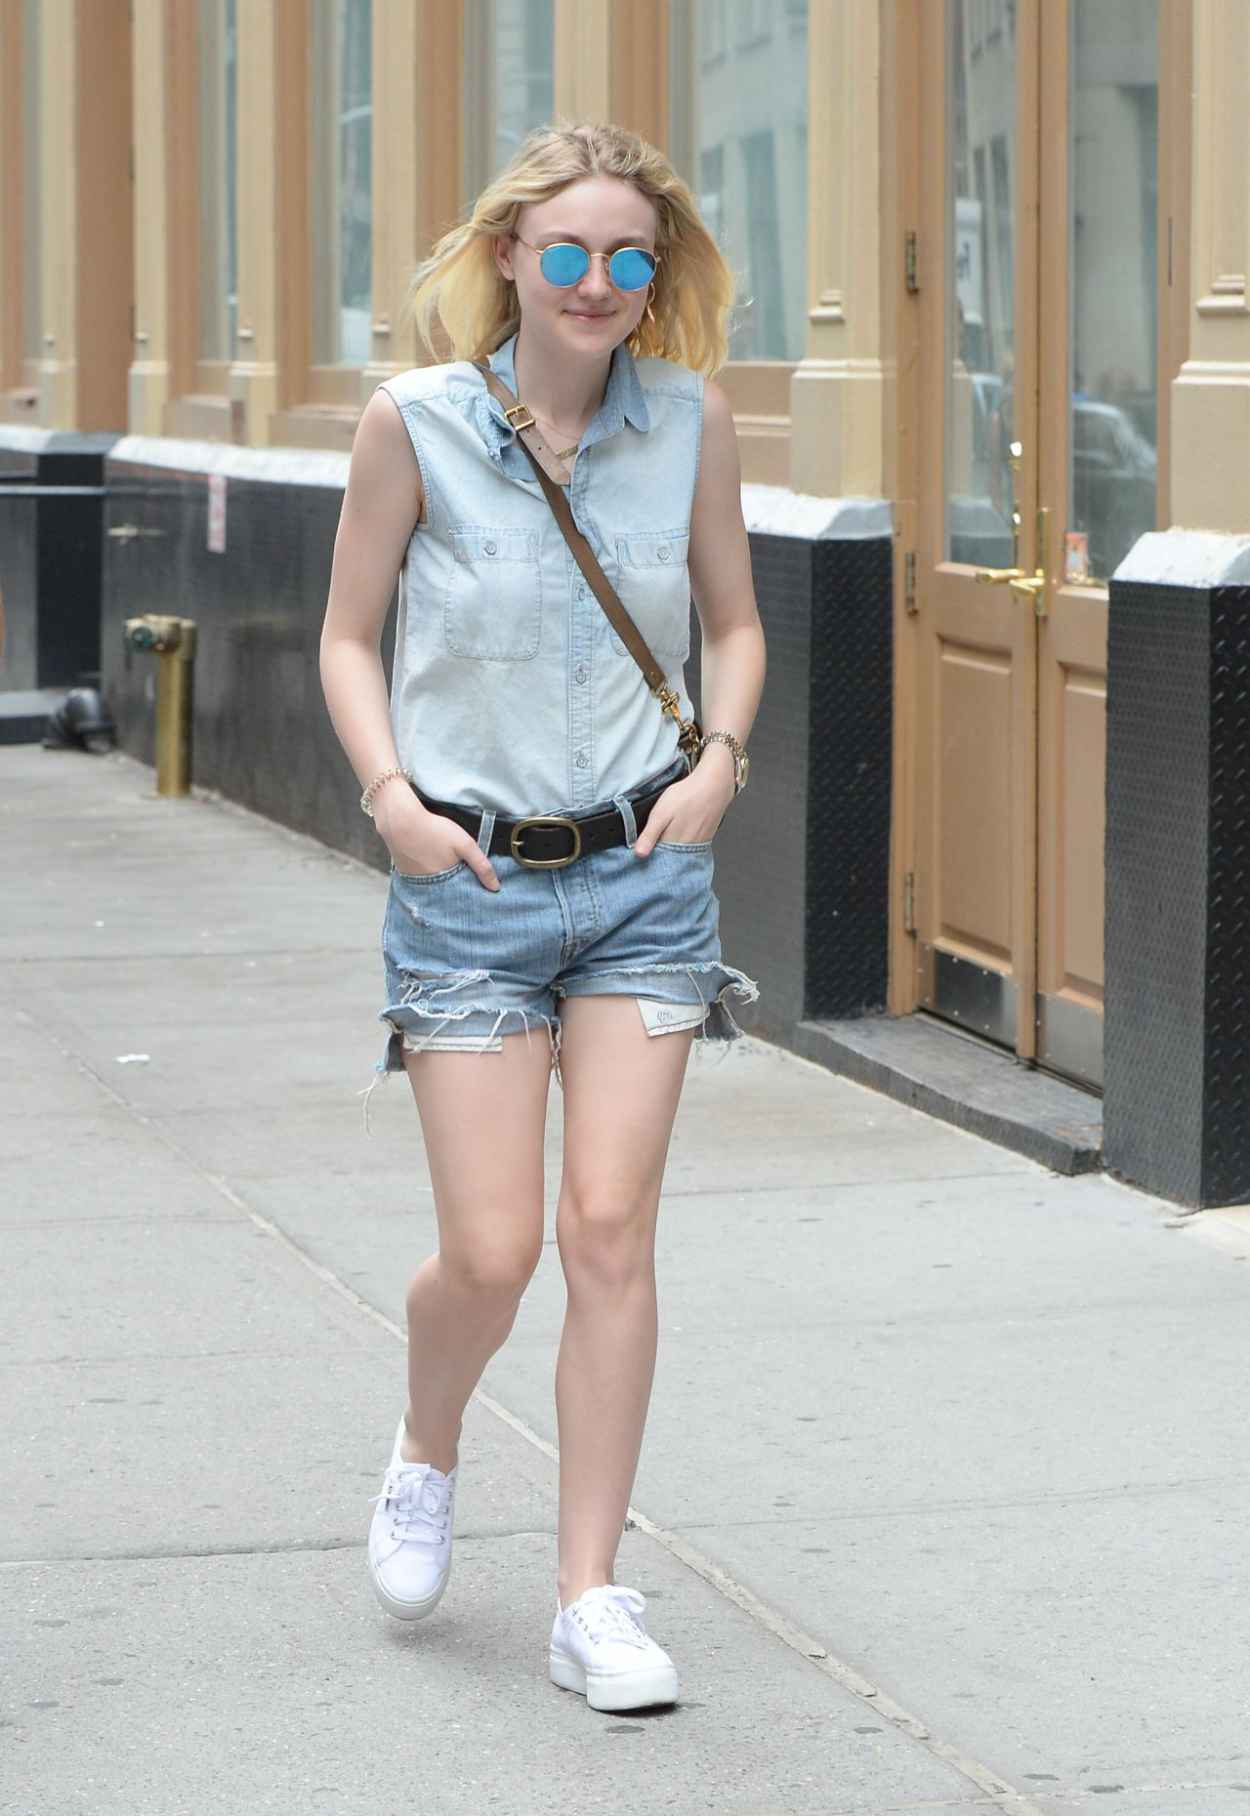 Dakota Fanning Leggy in Jeans Shorts - Soho NYC, June 2015-2